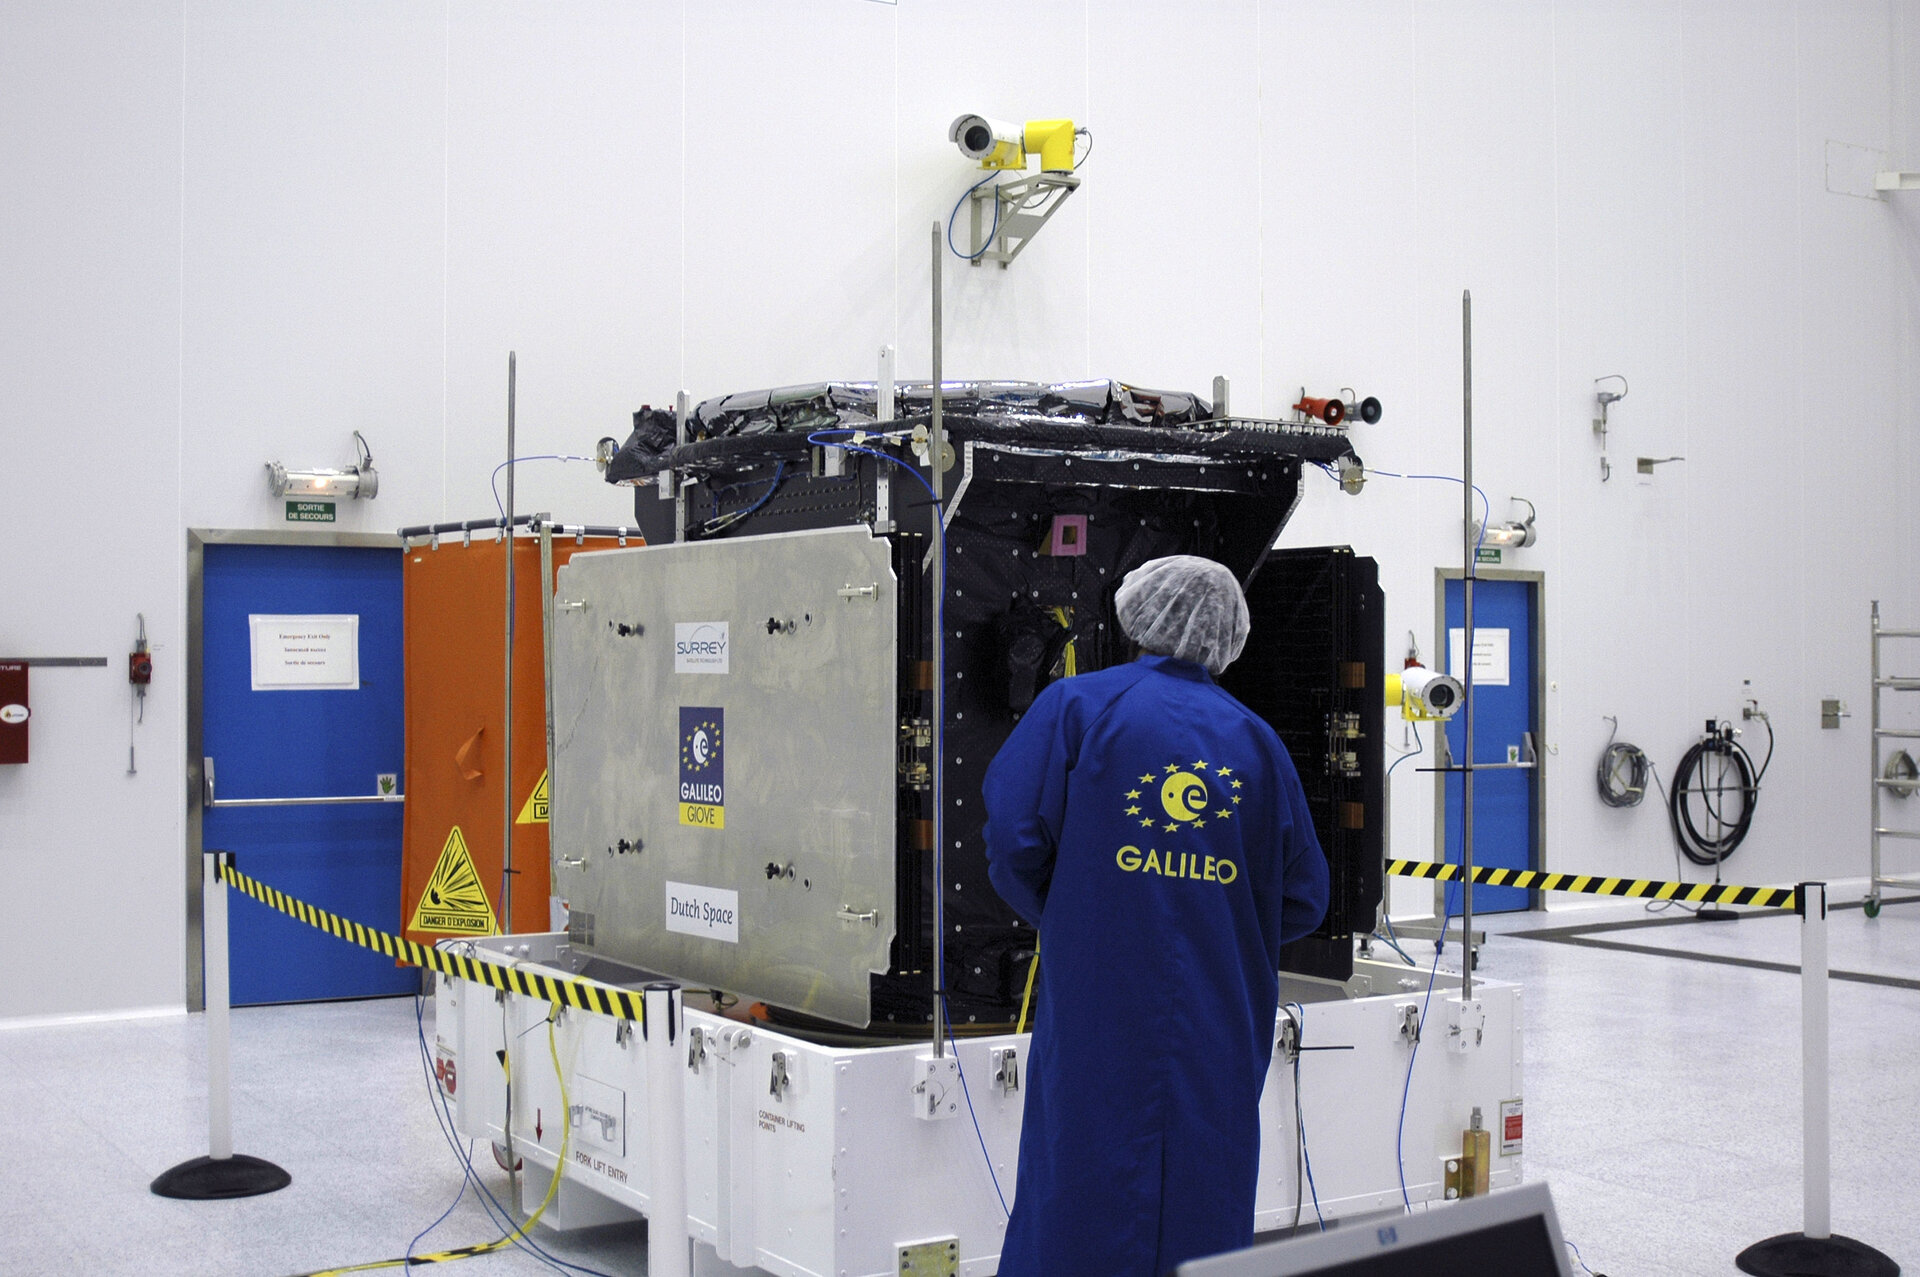 ESA expert inspecting GIOVE-A in clean room